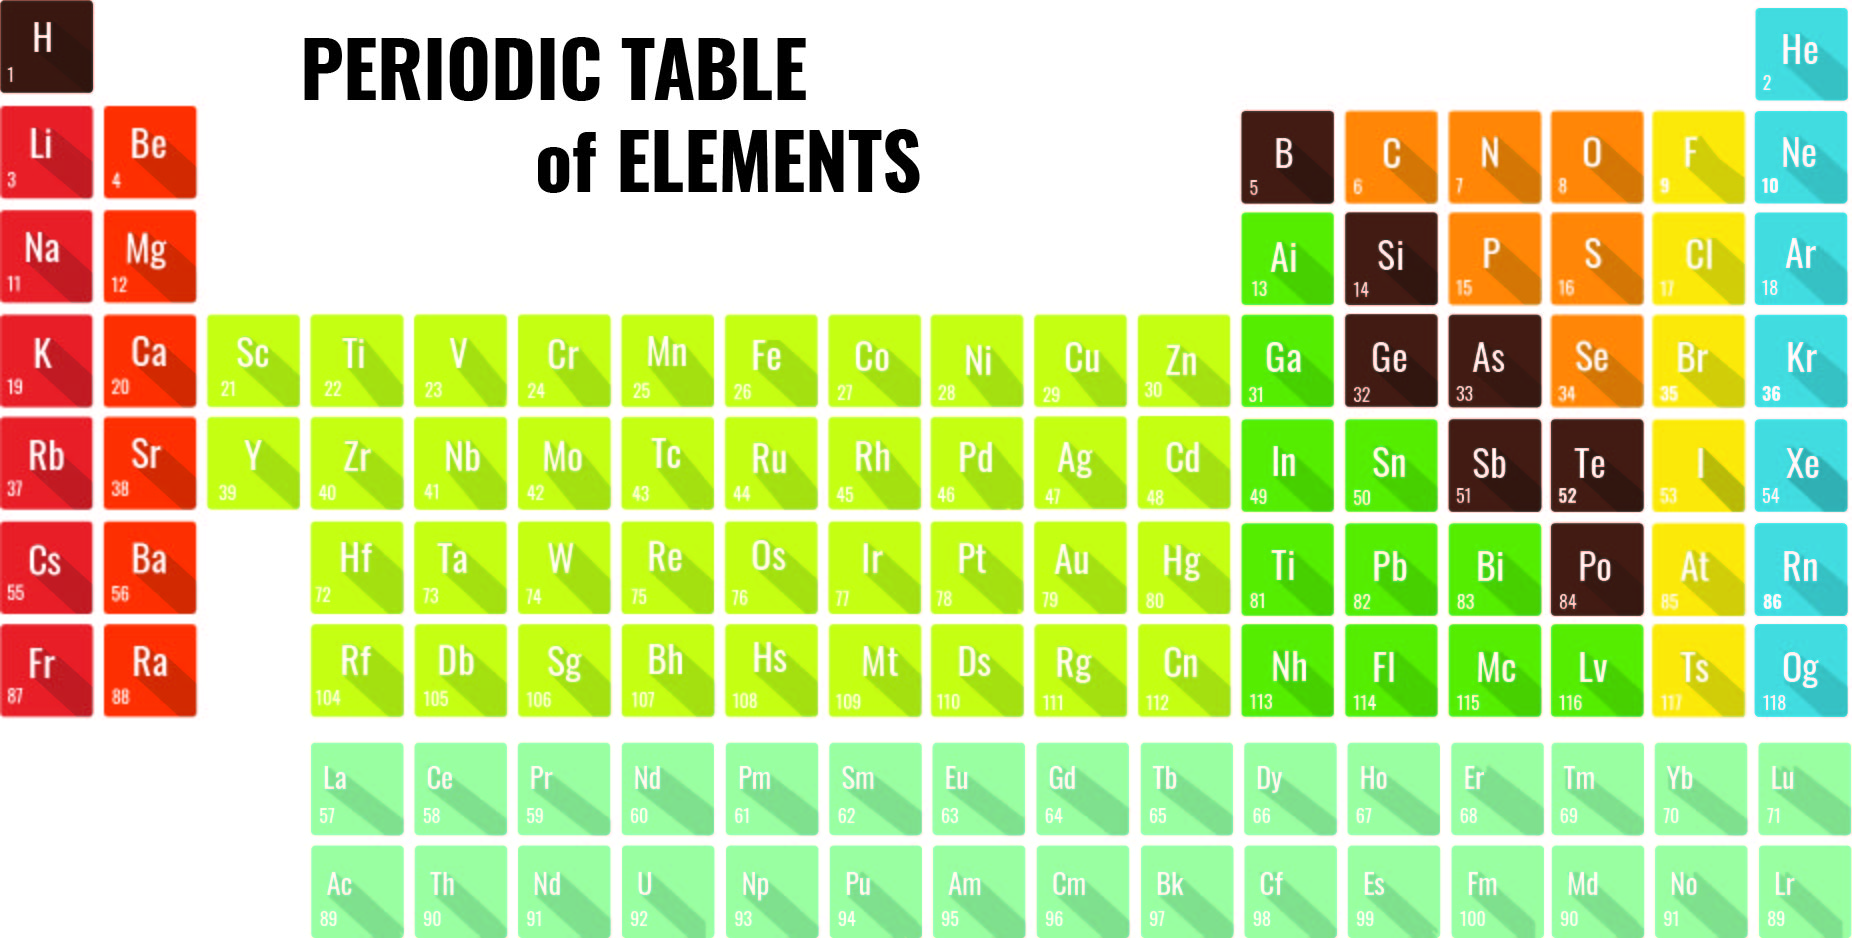 Printable Periodic Table with Element Names